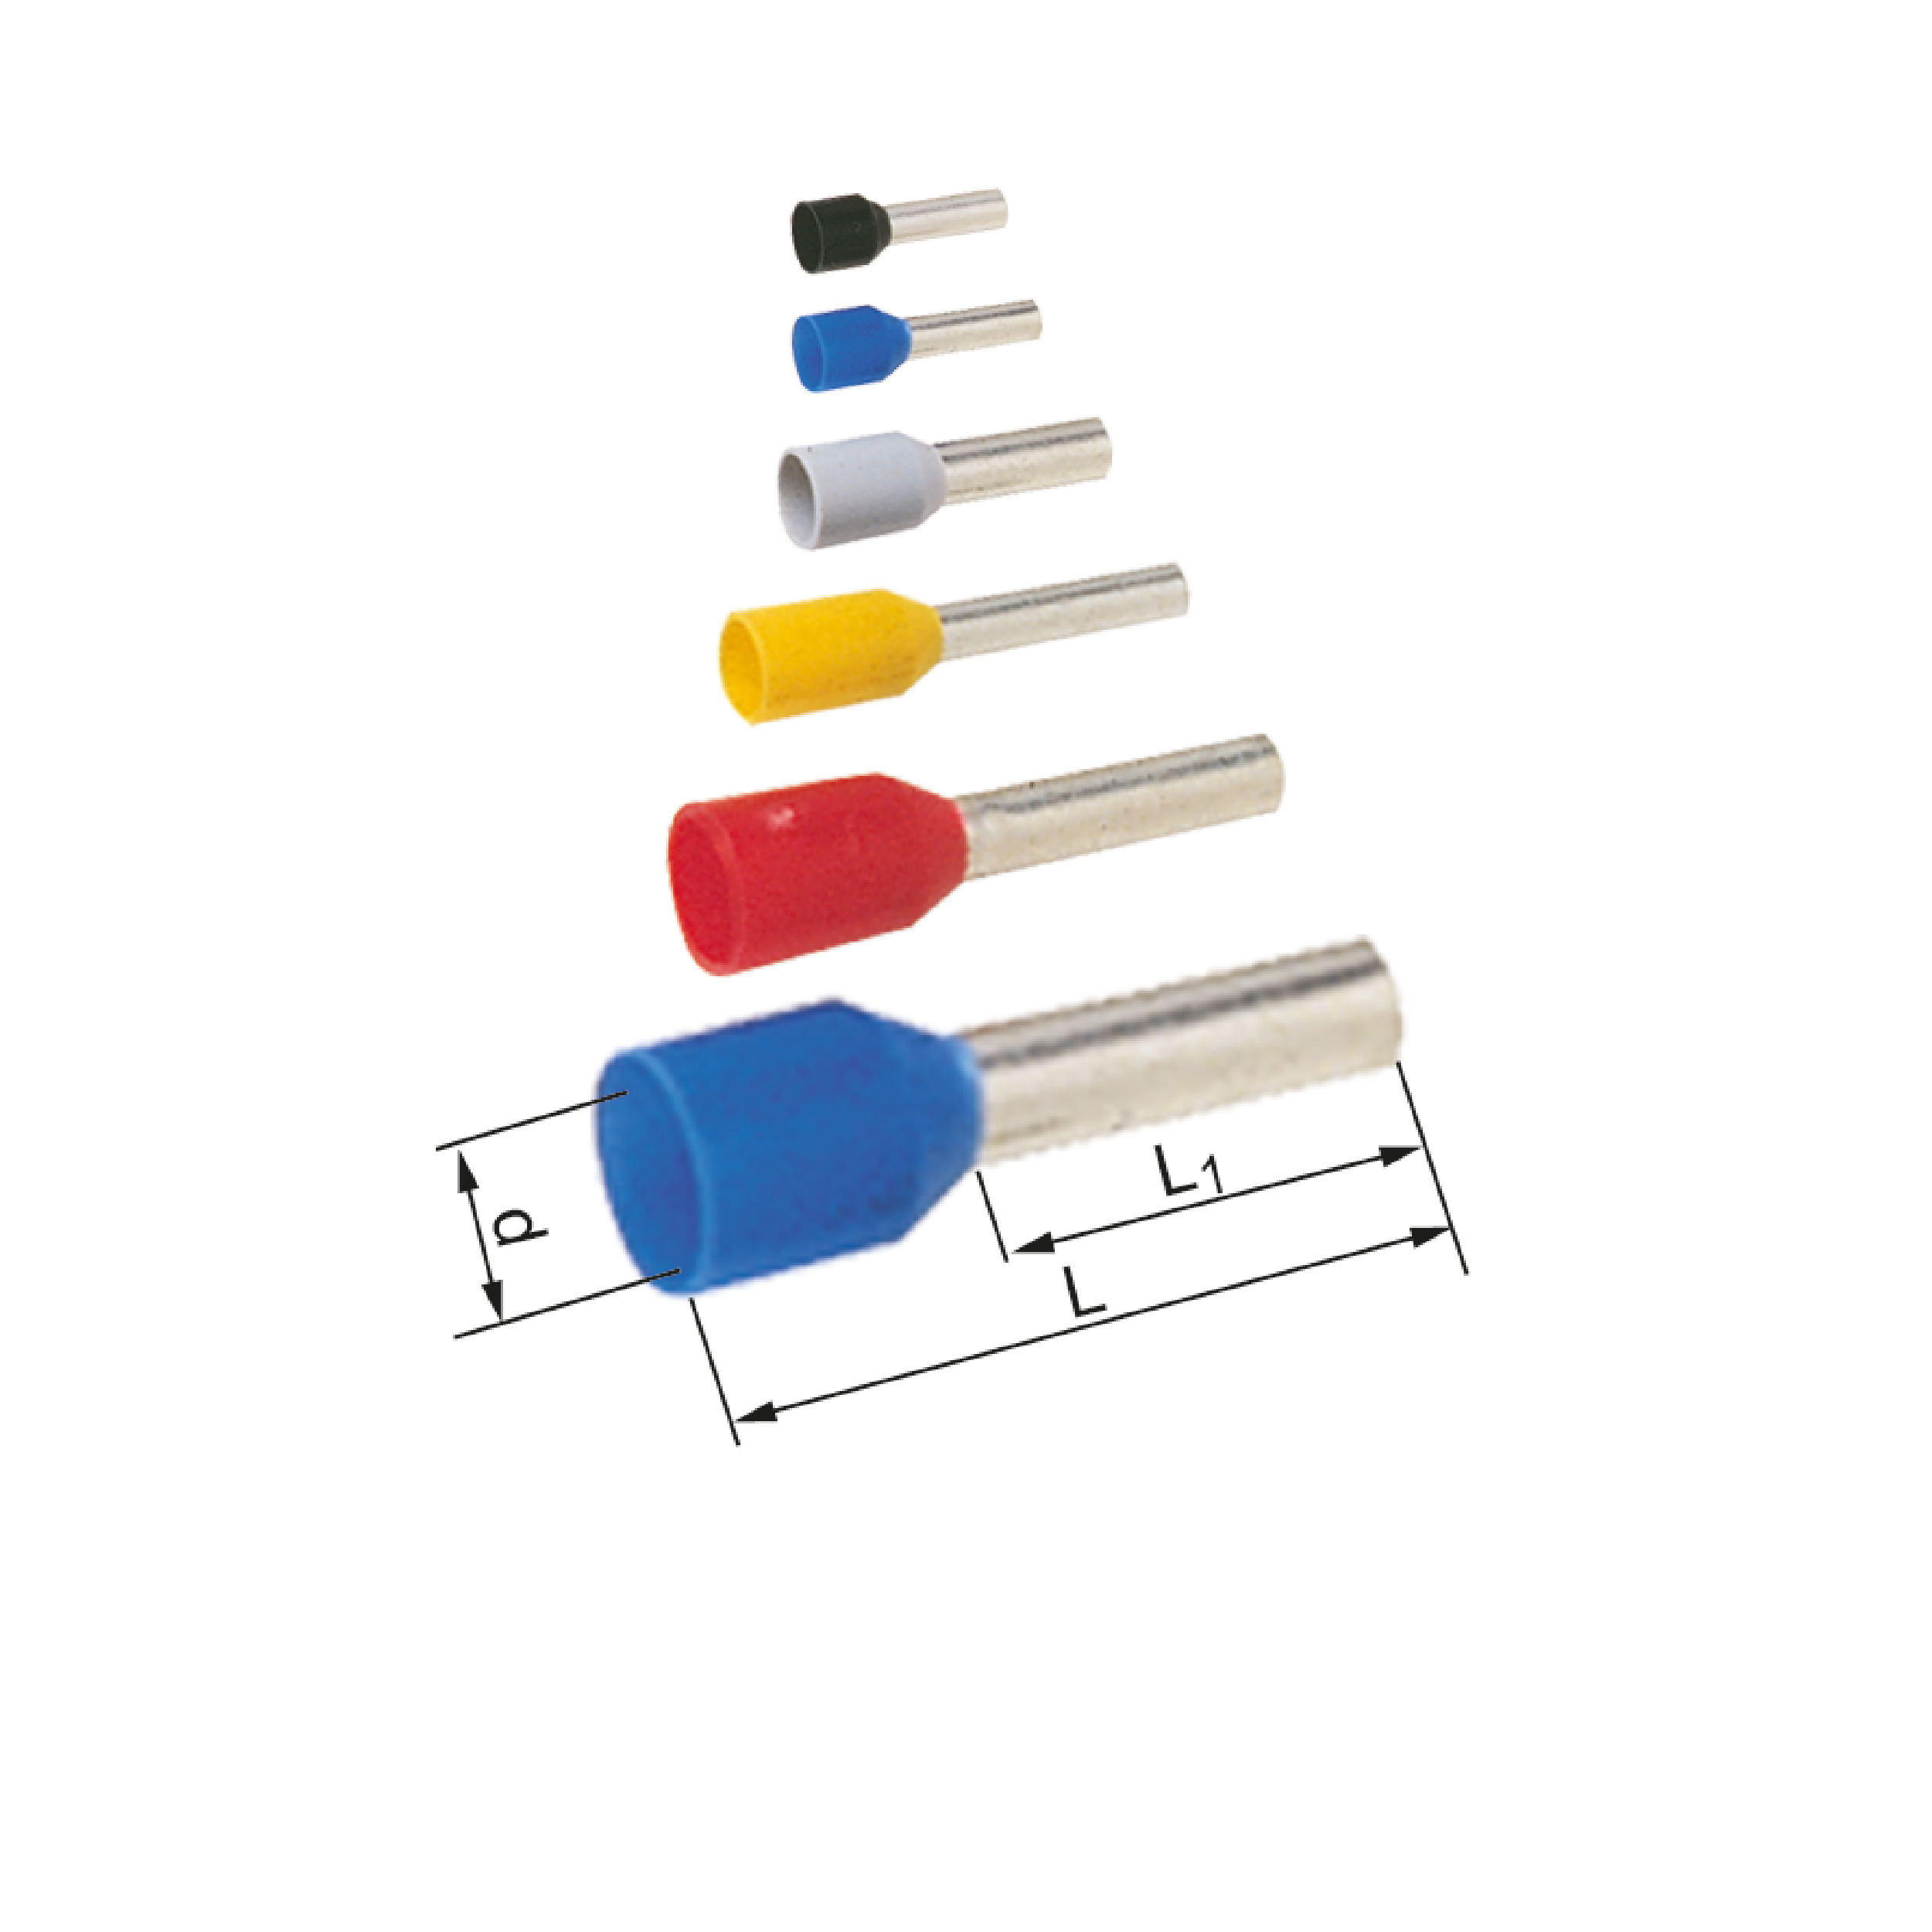 Elpress Pre-Insulated End Terminals for short-circuit proof cable (1.5-16mm²) (A4-10ETDXL, A6-12ETDXL, A10-12ETDXL)